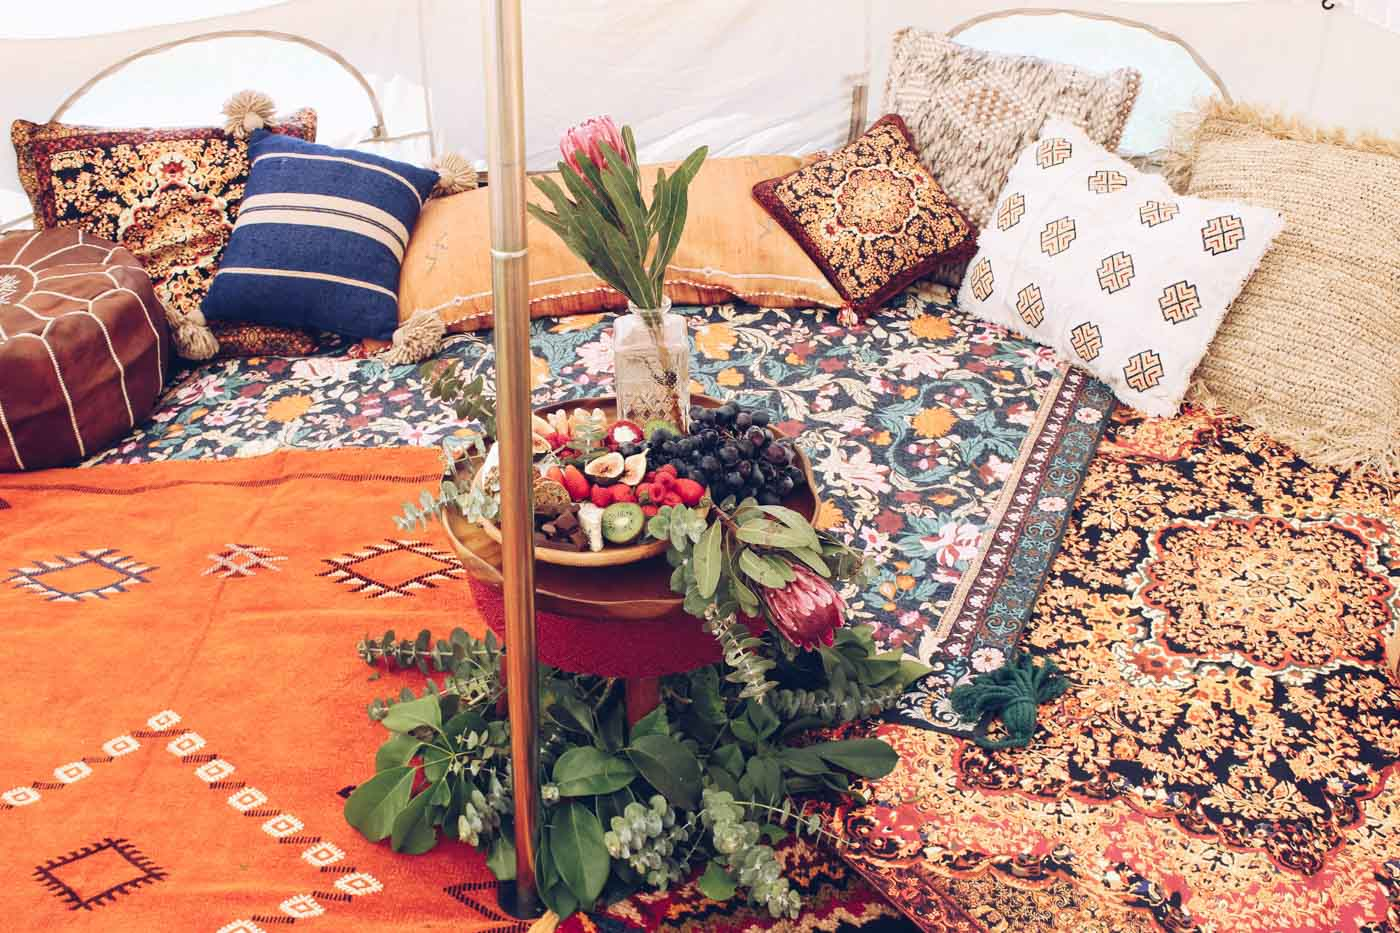 the_Collection_co_grazing_table_cairns_weddings_catering_grazing_platter_hire_pop_up_picnic_bell_tent_event_hire_styling-37-2.jpg